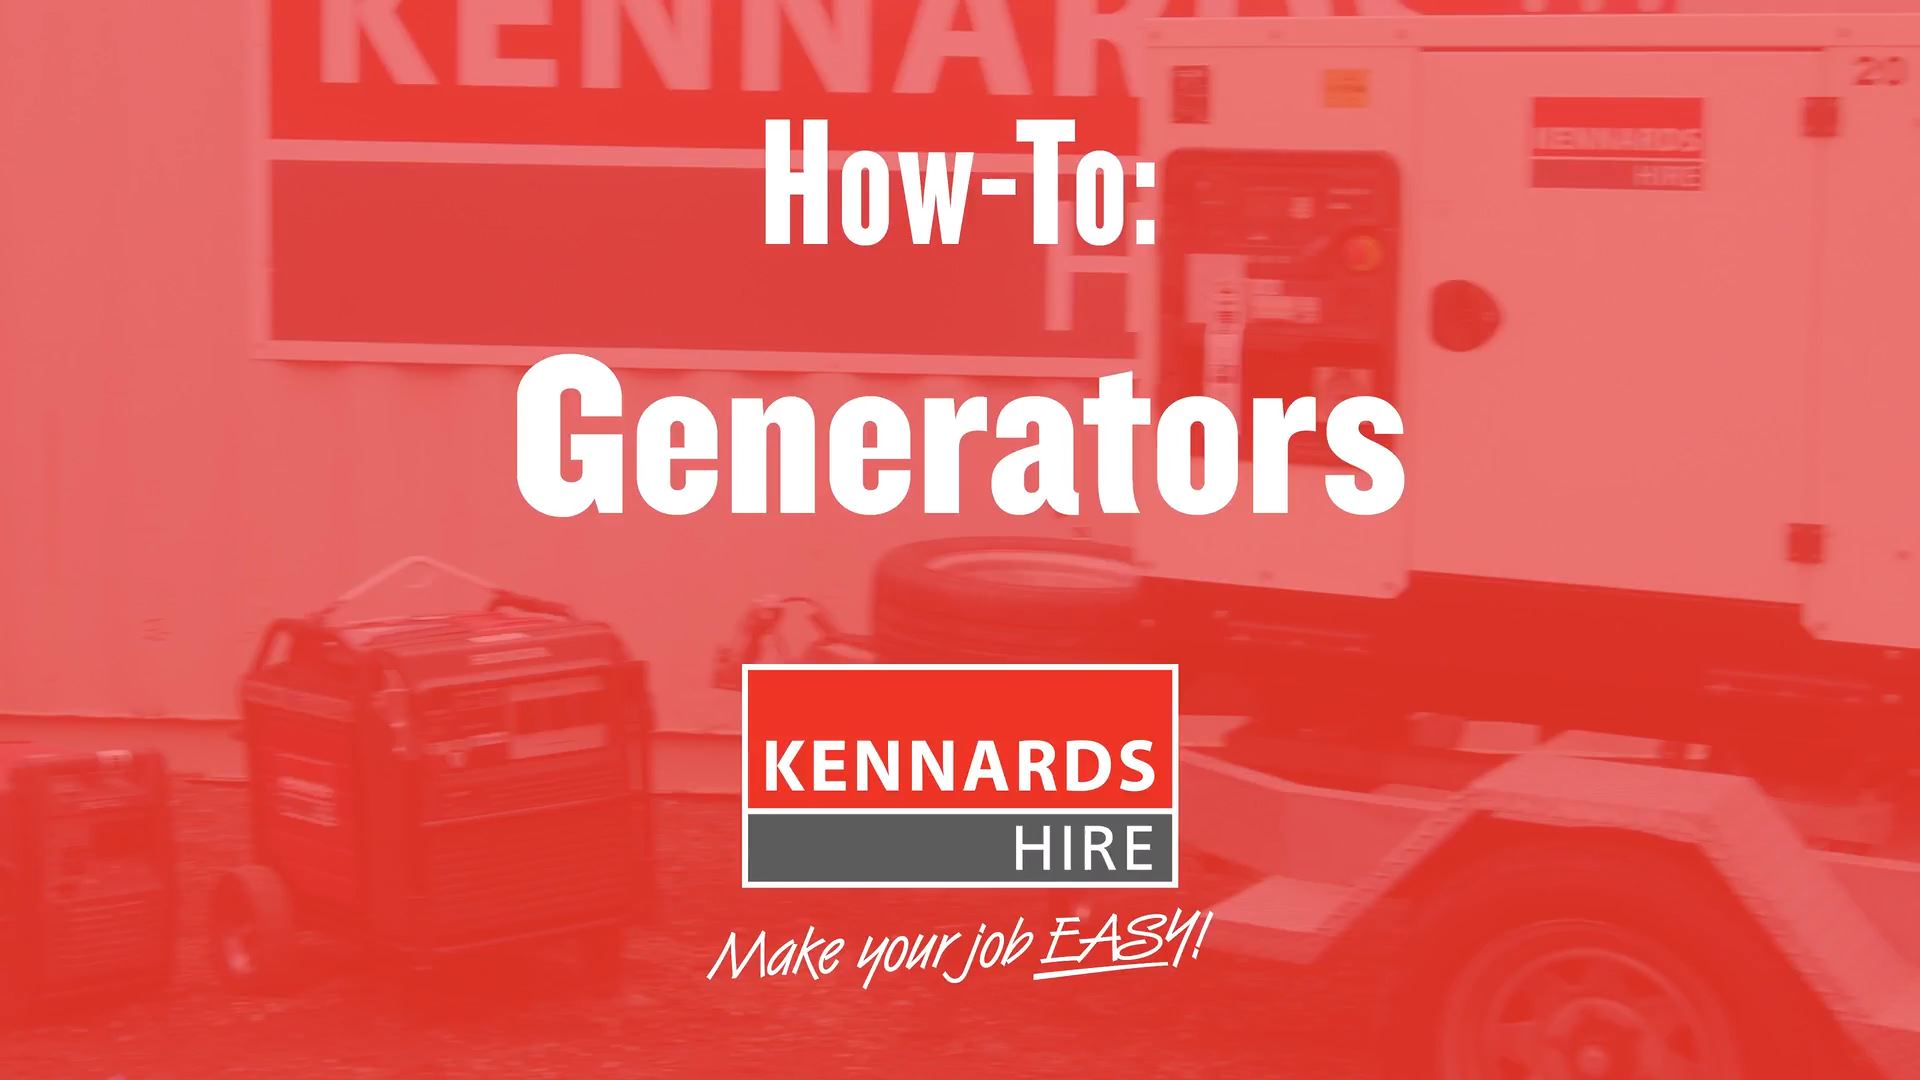 How to operate a Generator